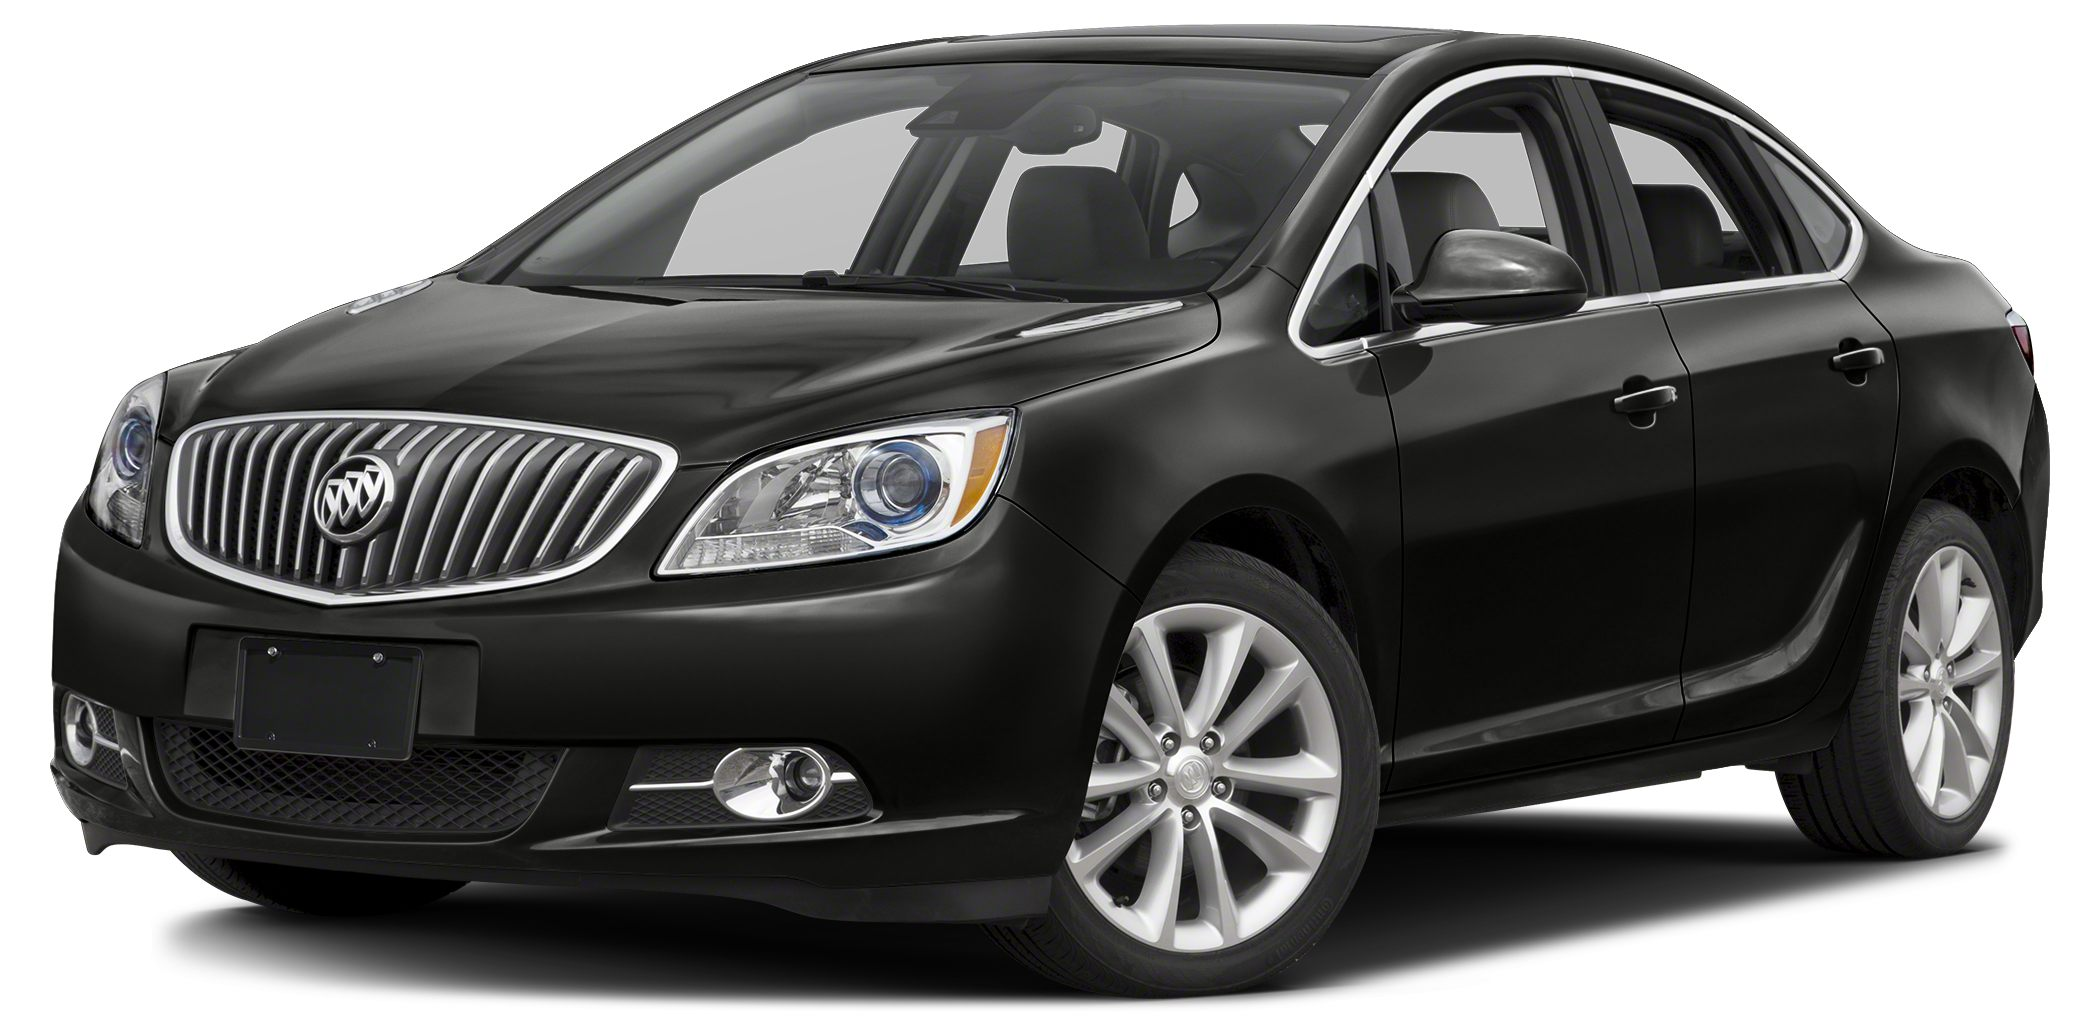 2015 Buick Verano Convenience Group Steer your way toward stress-free driving with anti-lock brake